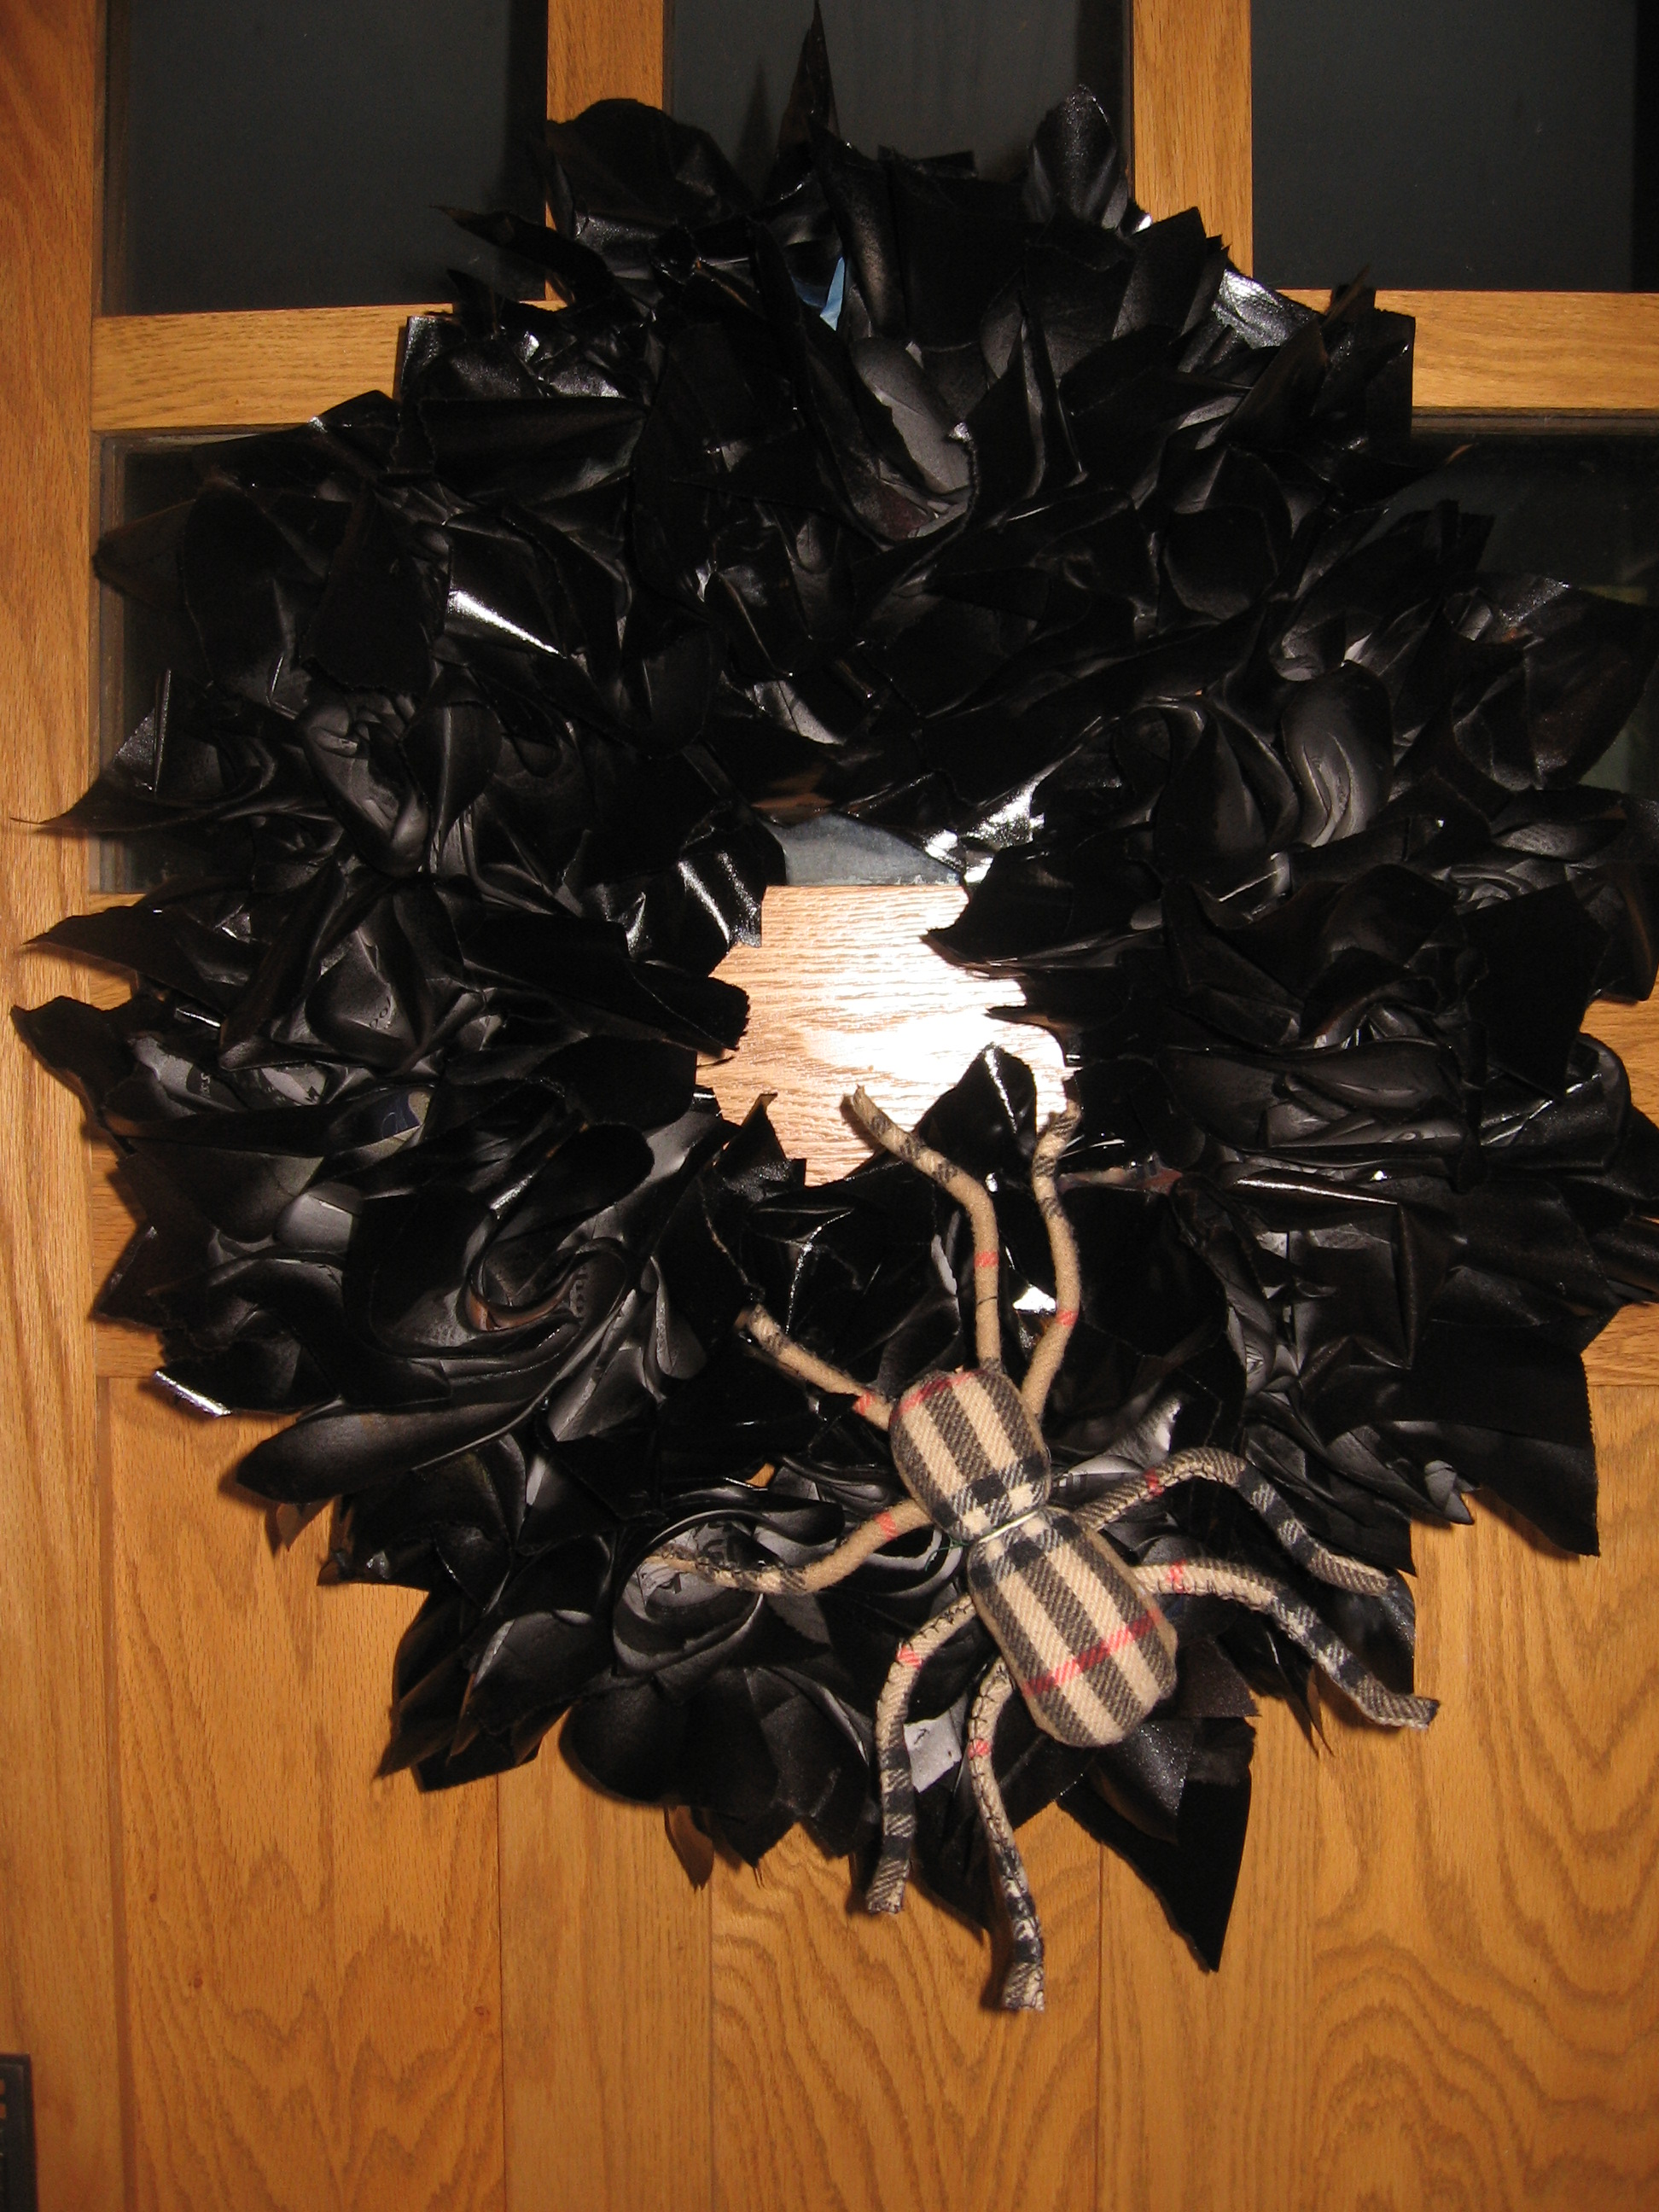 A Spider in Our Wreath